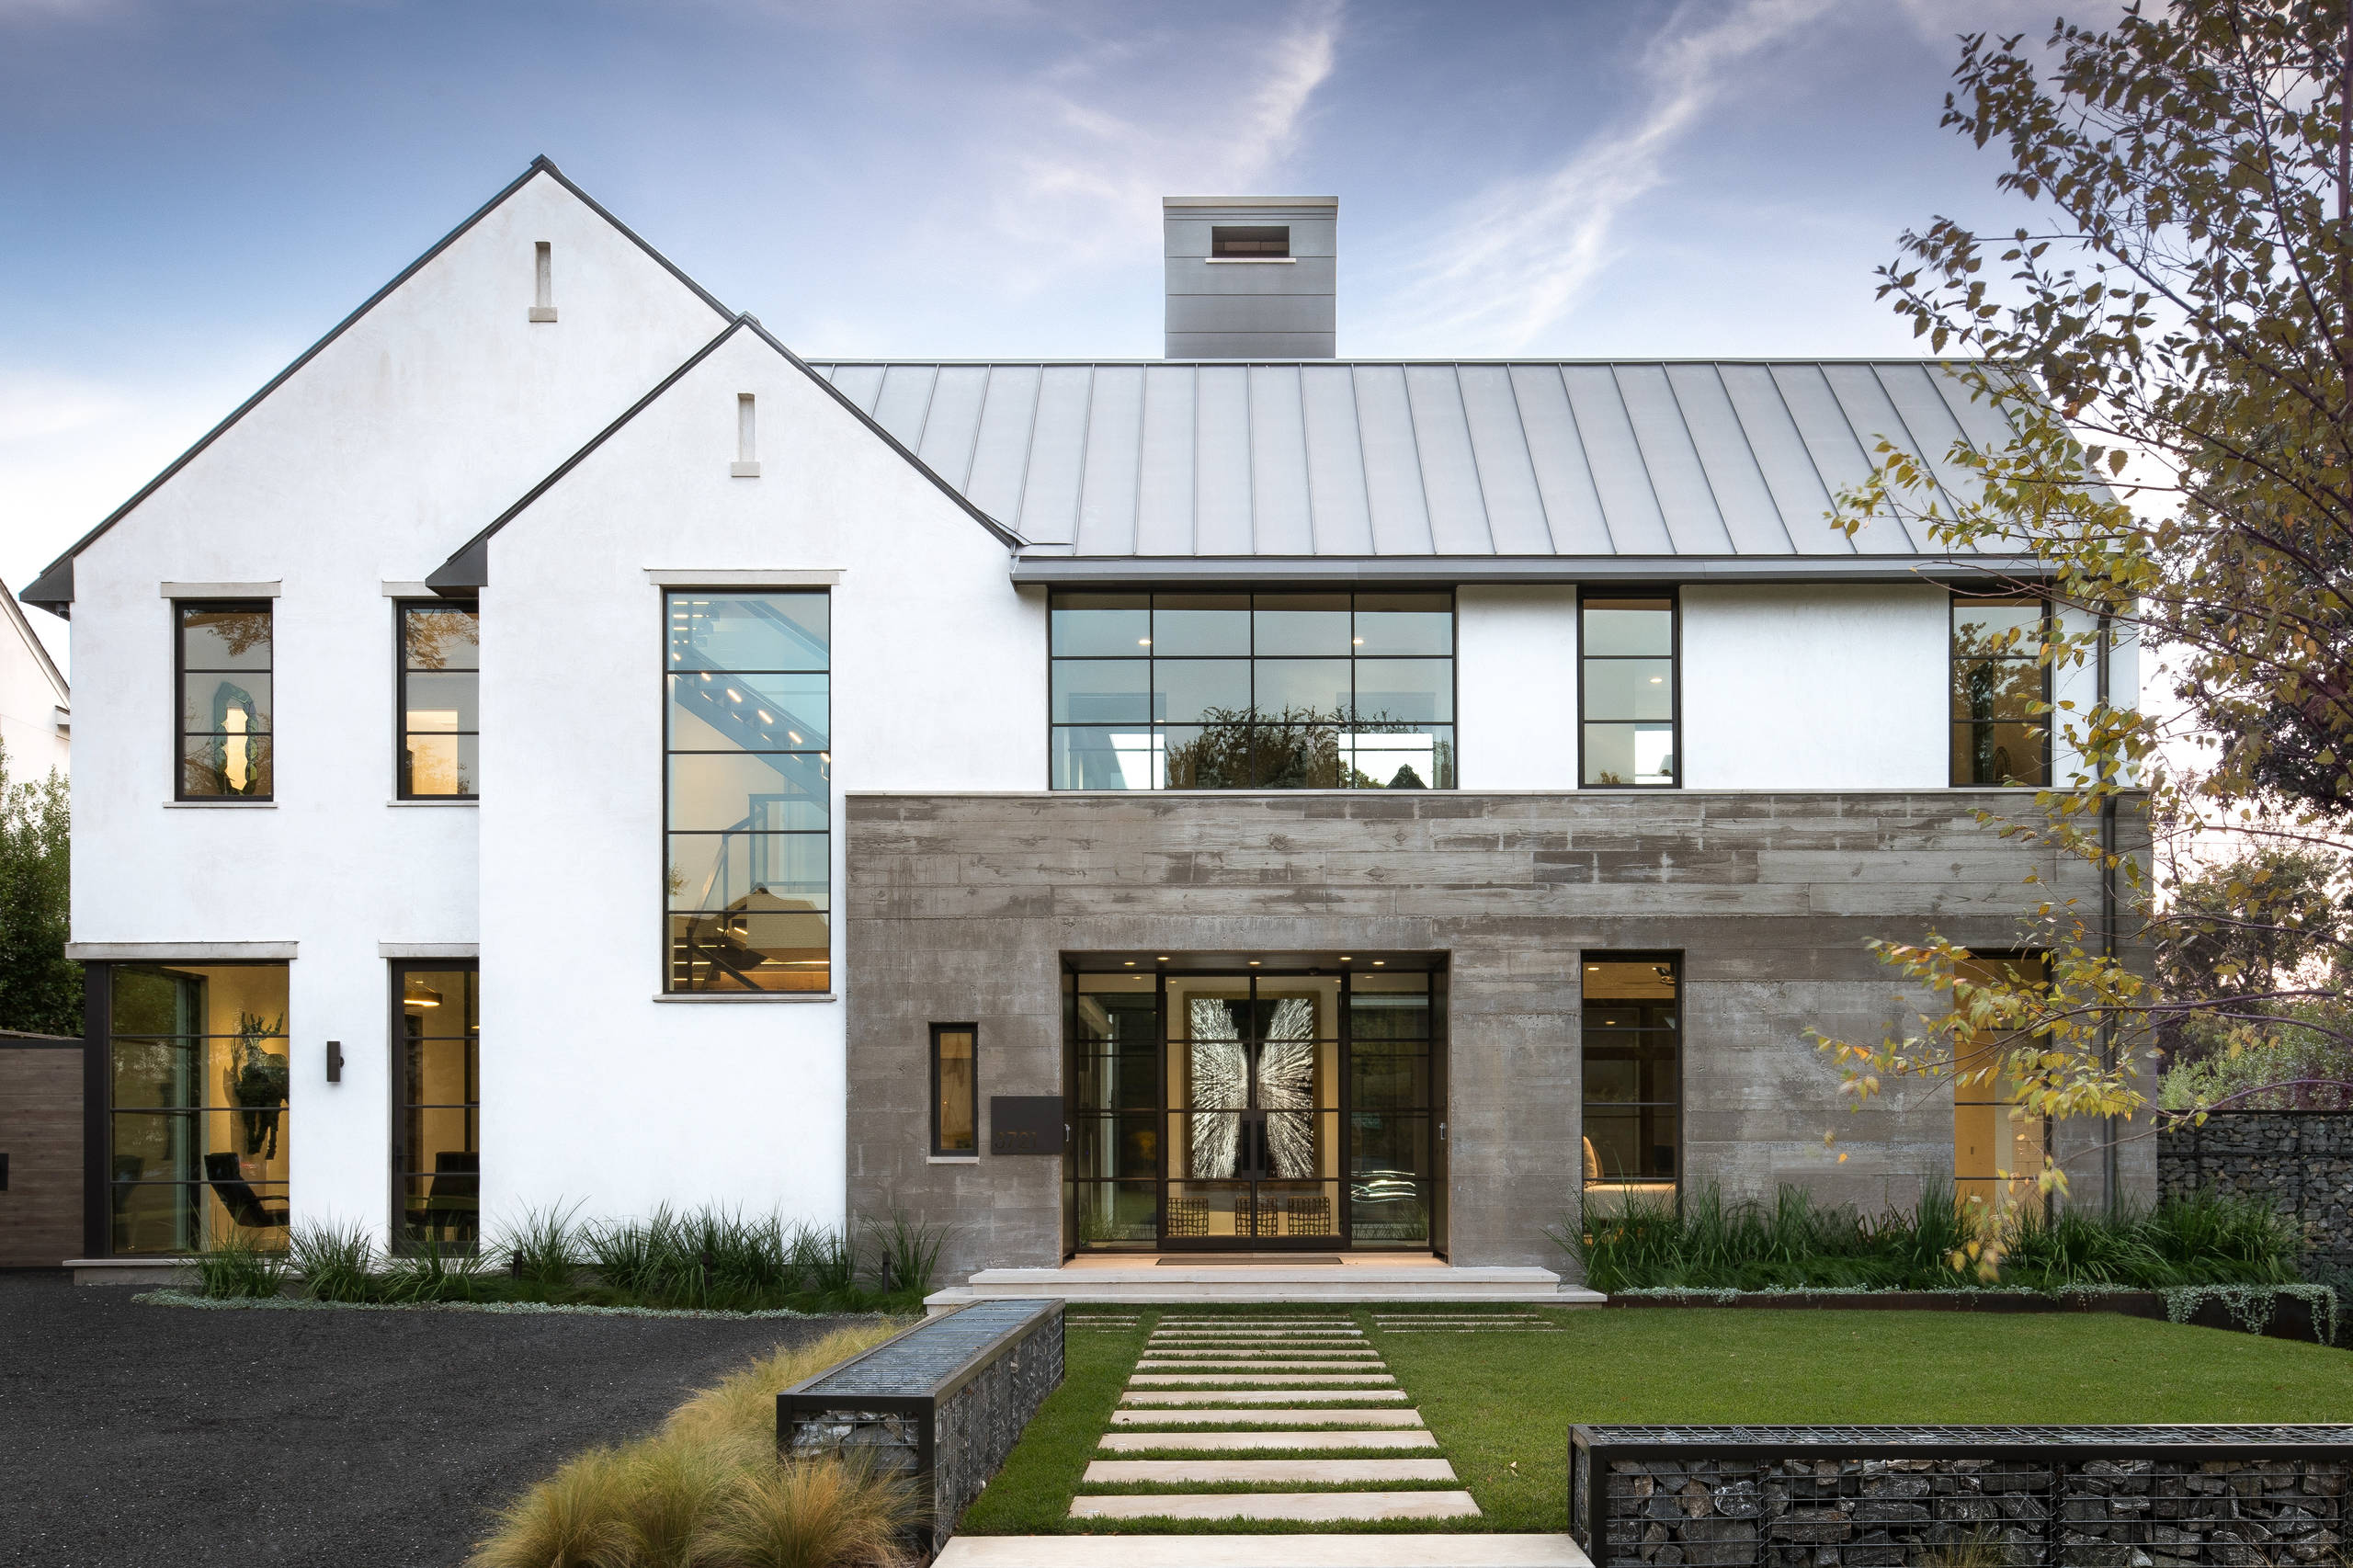 75 Beautiful Modern Gable Roof Pictures Ideas January 2021 Houzz